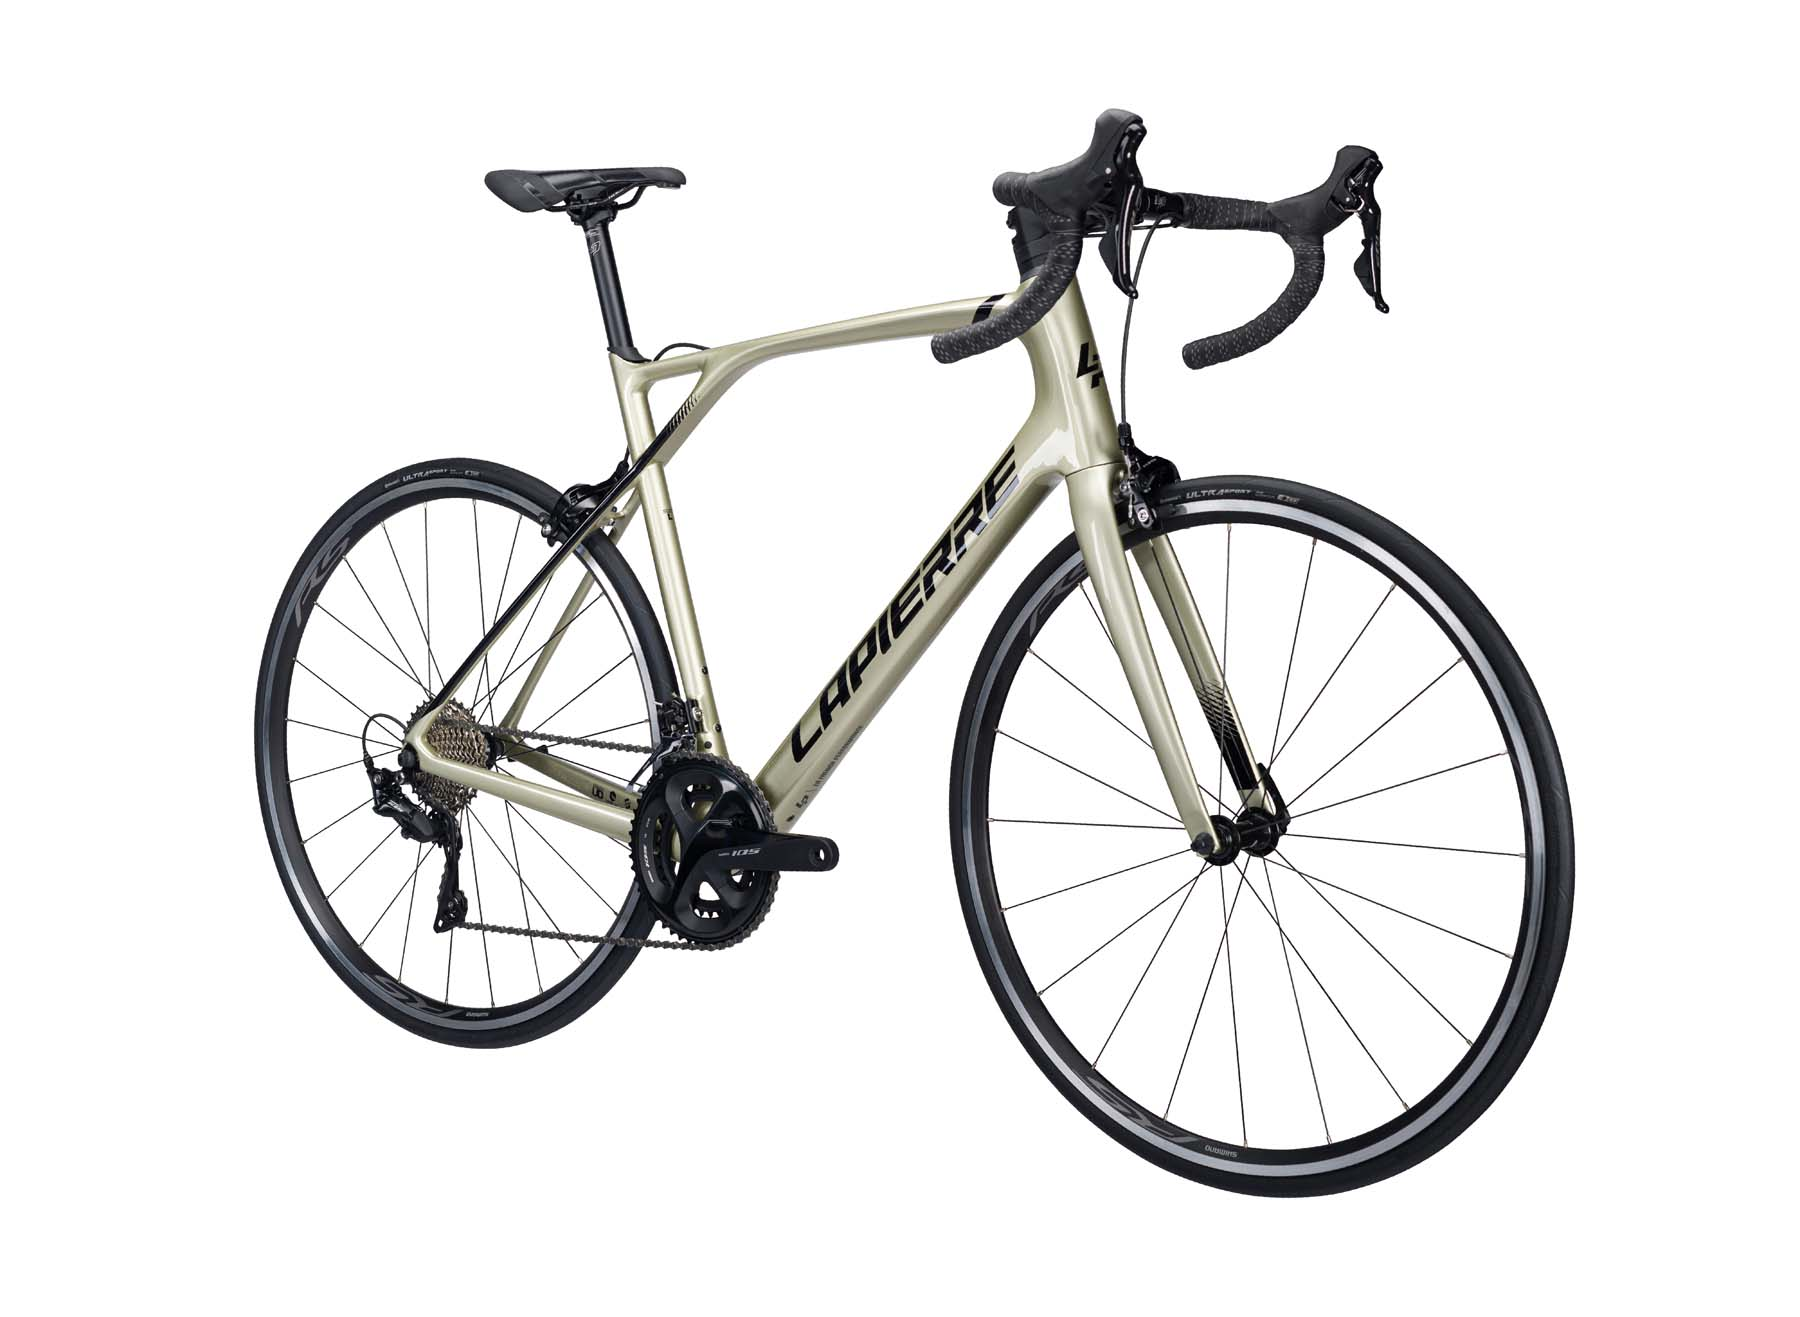 Lapierre Pulsium 5.0 2021 Endurance Road Bike 2